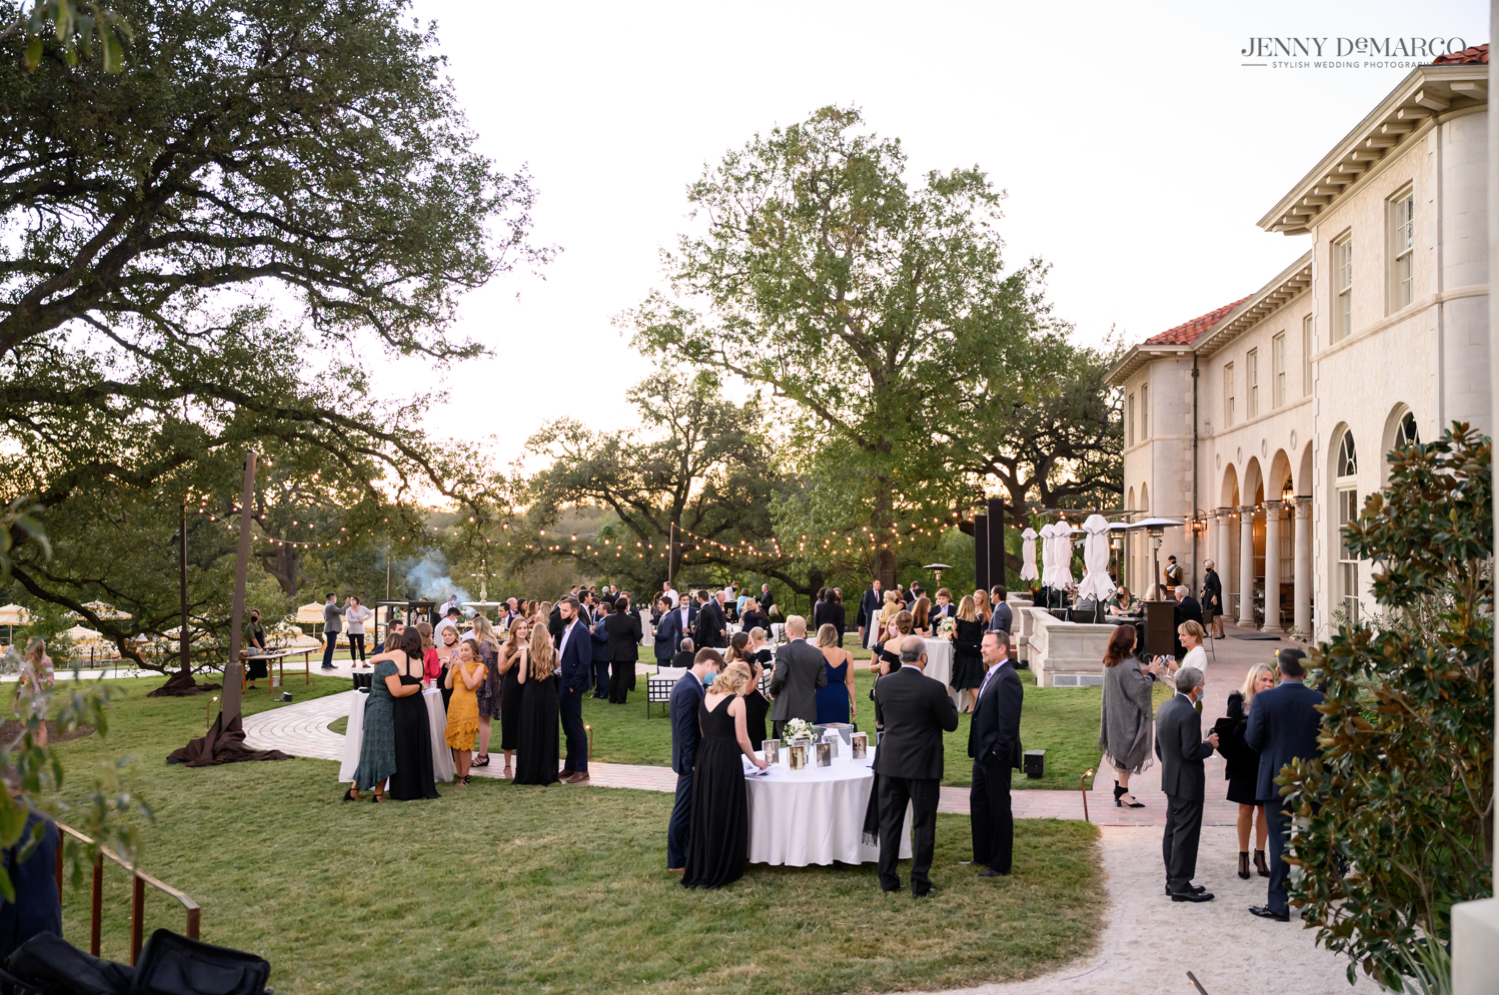 wedding guests enjoying the sunken garden at the Commodore Perry Hotel in Austin, Texas